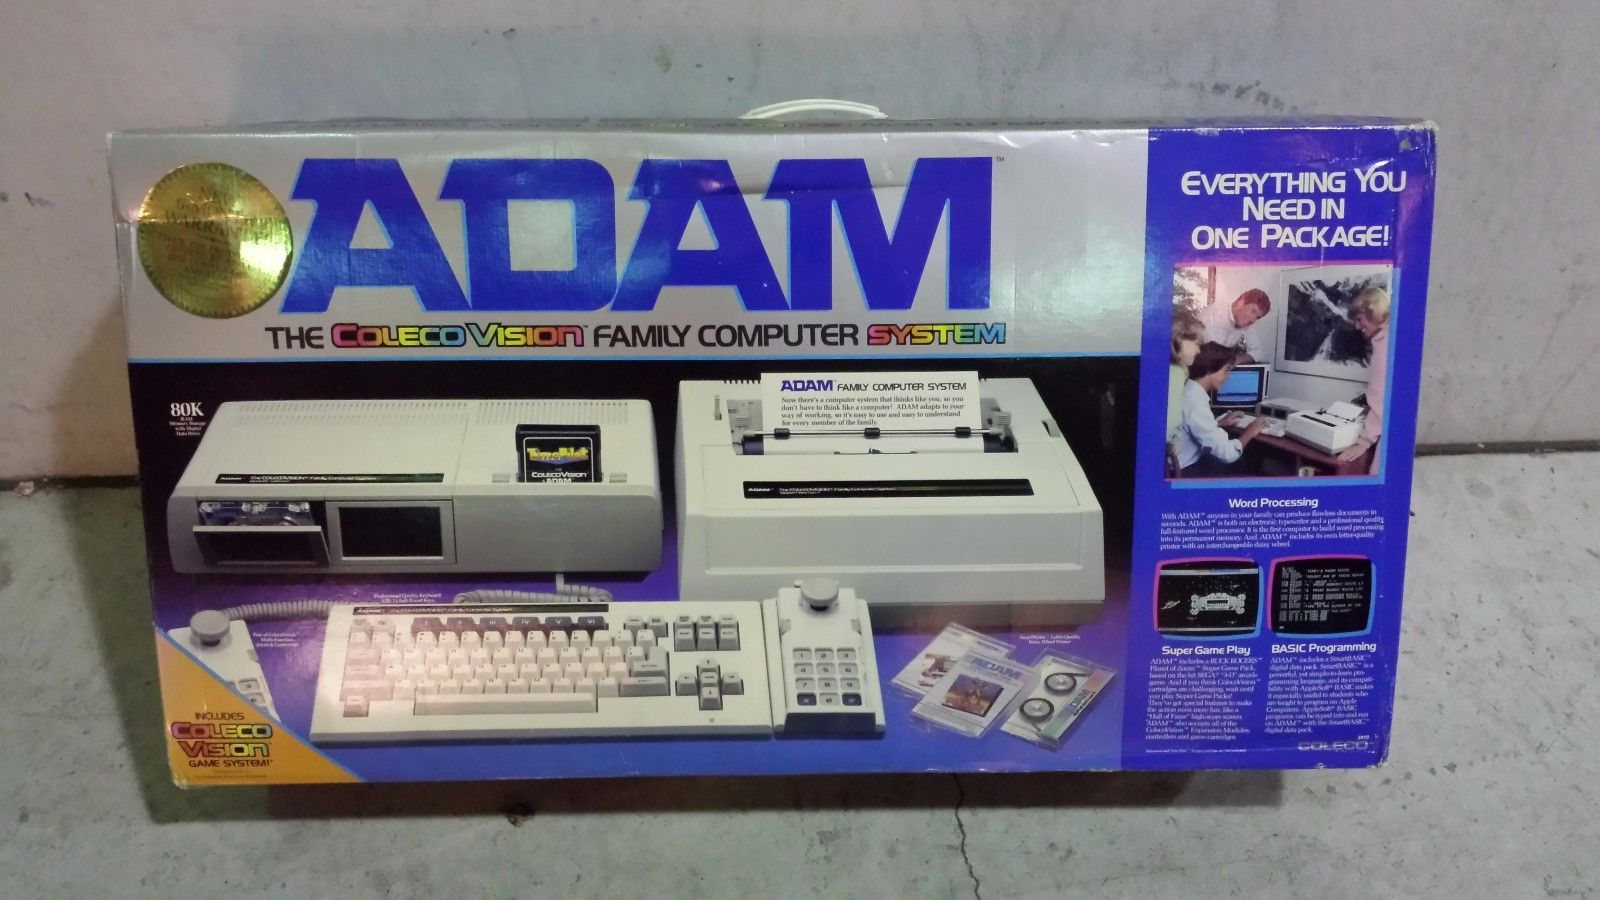 Coleco_ADAM_Video_Game_Consoles_2187e4b4-fc21-4727-9e2d-3a13e99ab9eb